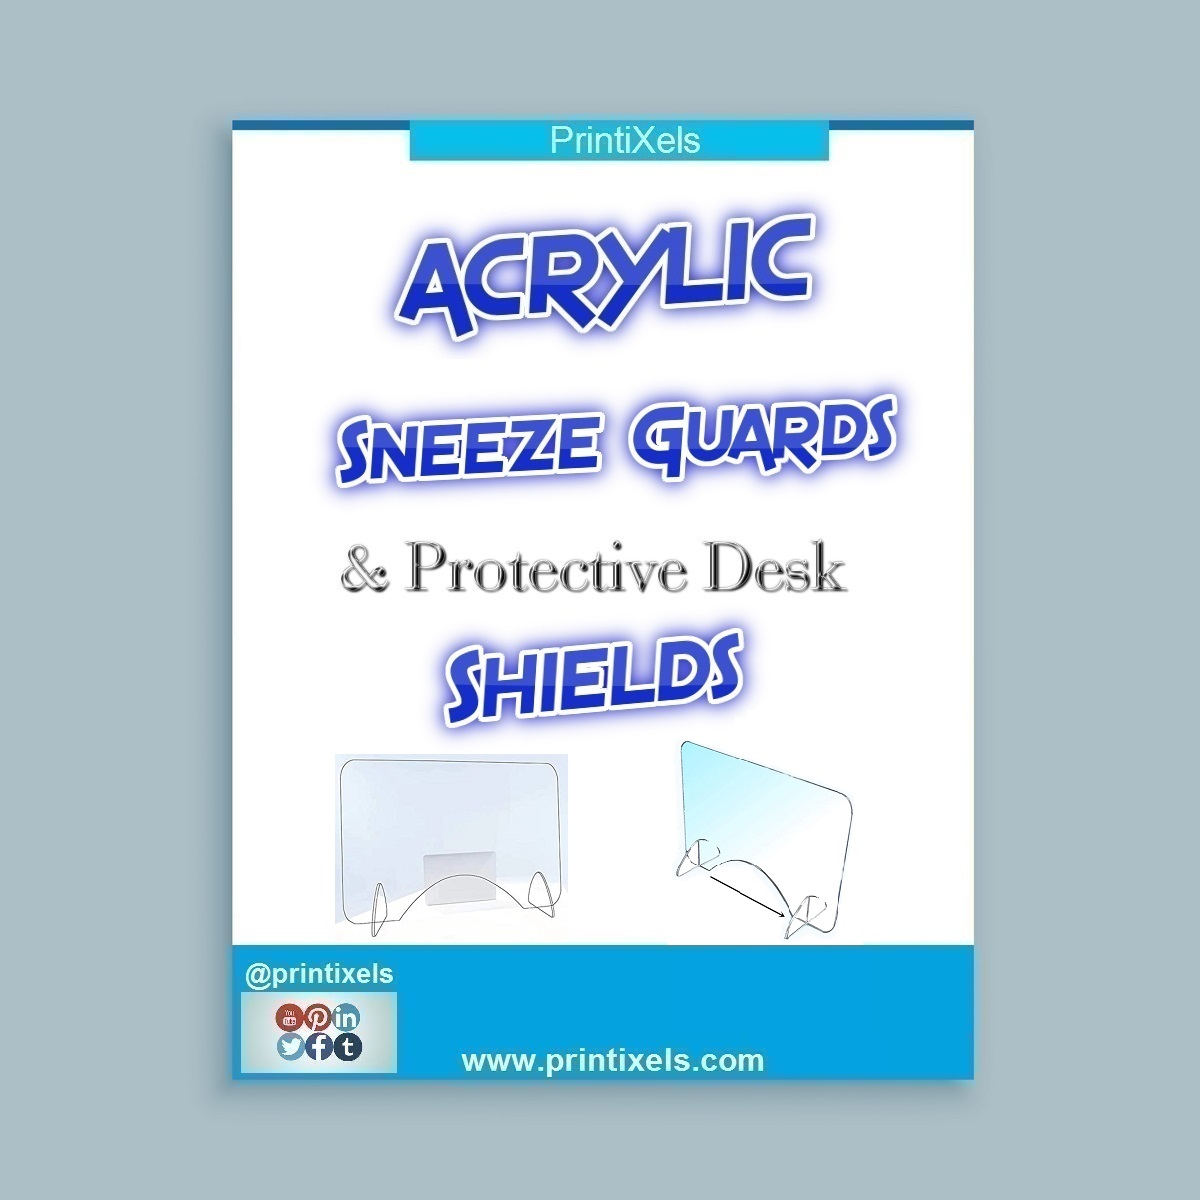 Acrylic Sneeze Guards & Protective Desk Shields Philippines